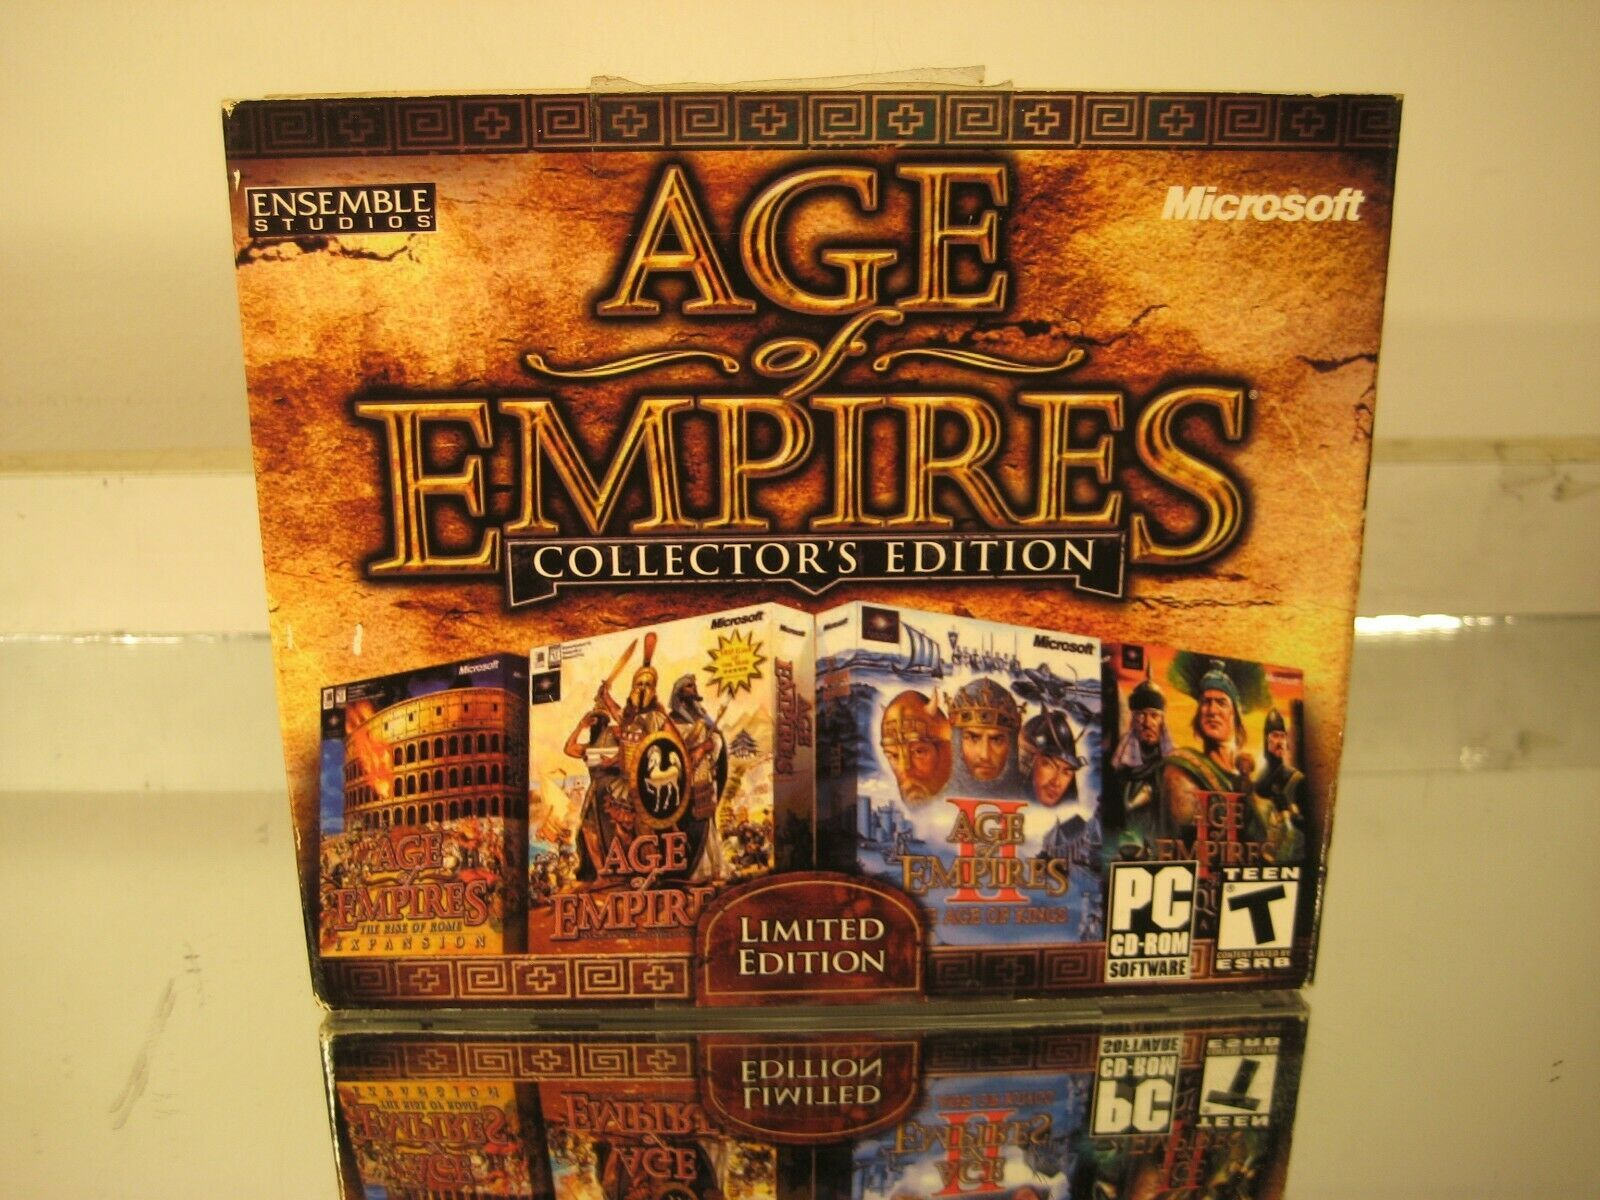 Age of Empires Collectors' Edition 2000 PC CDROM RTS Game